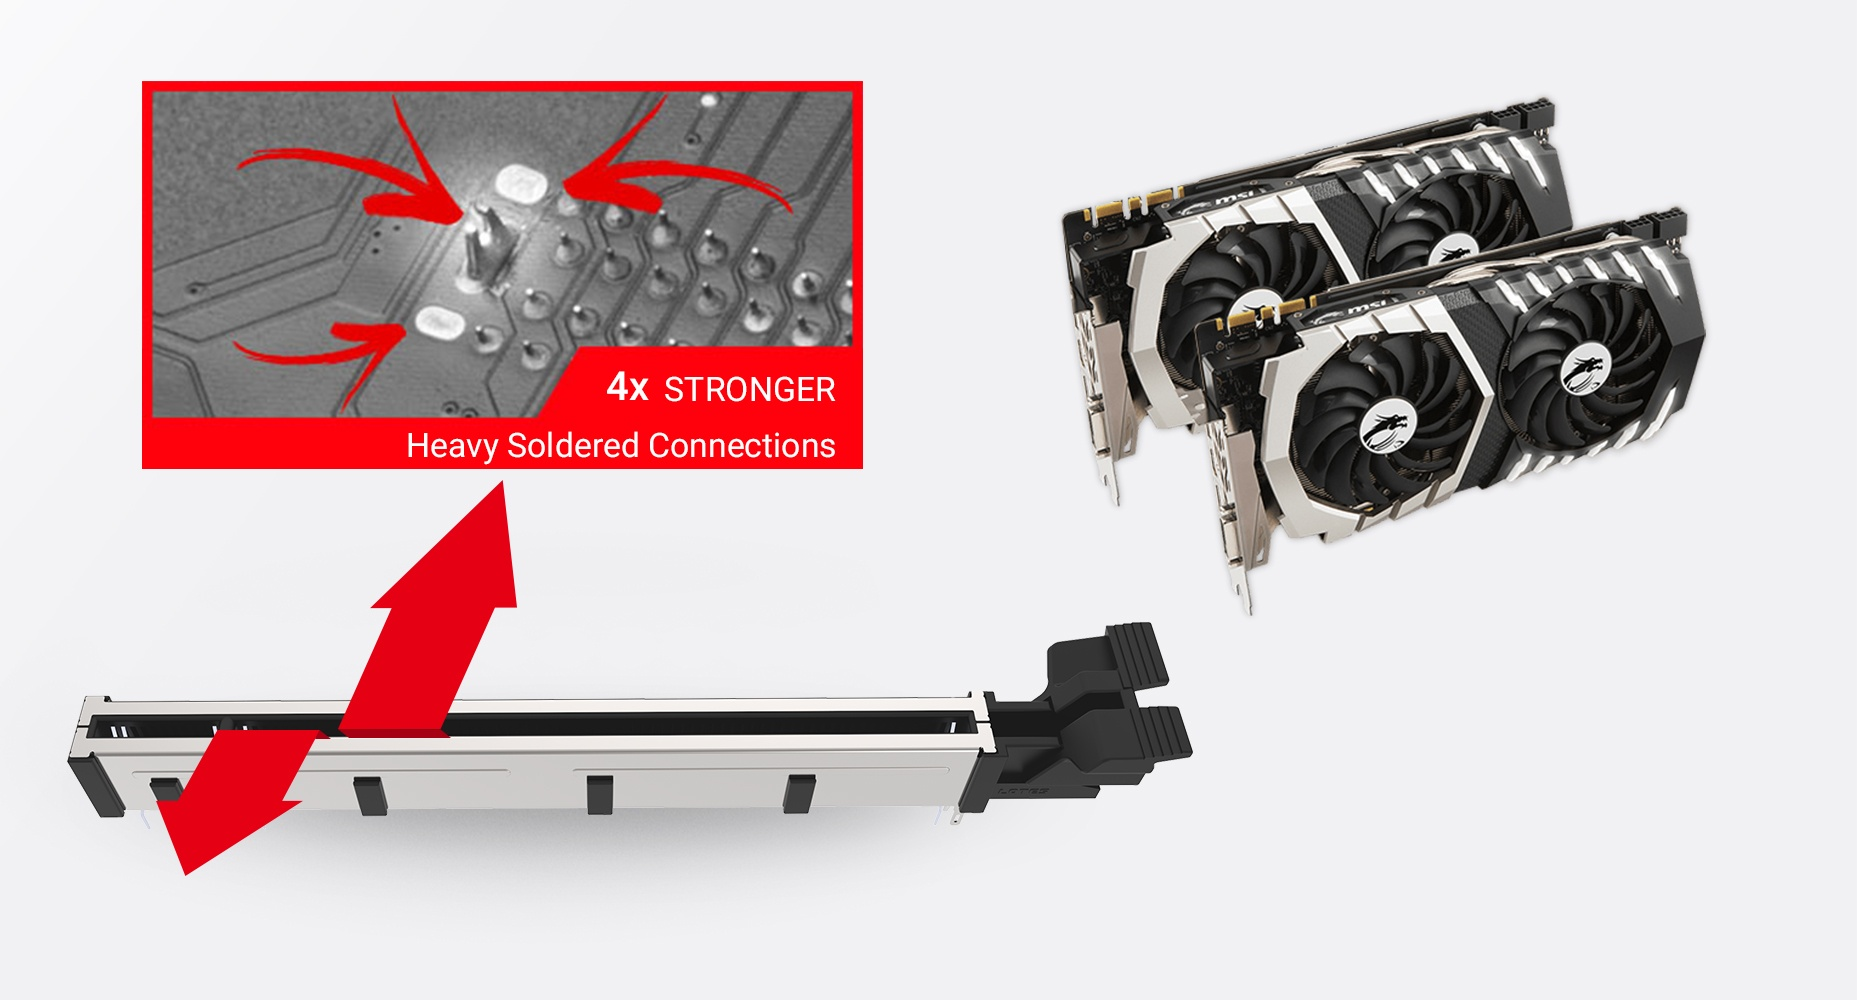 MSI MAG Z490 TOMAHAWK MULTIPLE GPU SUPPORTS AND STEEL ARMOR